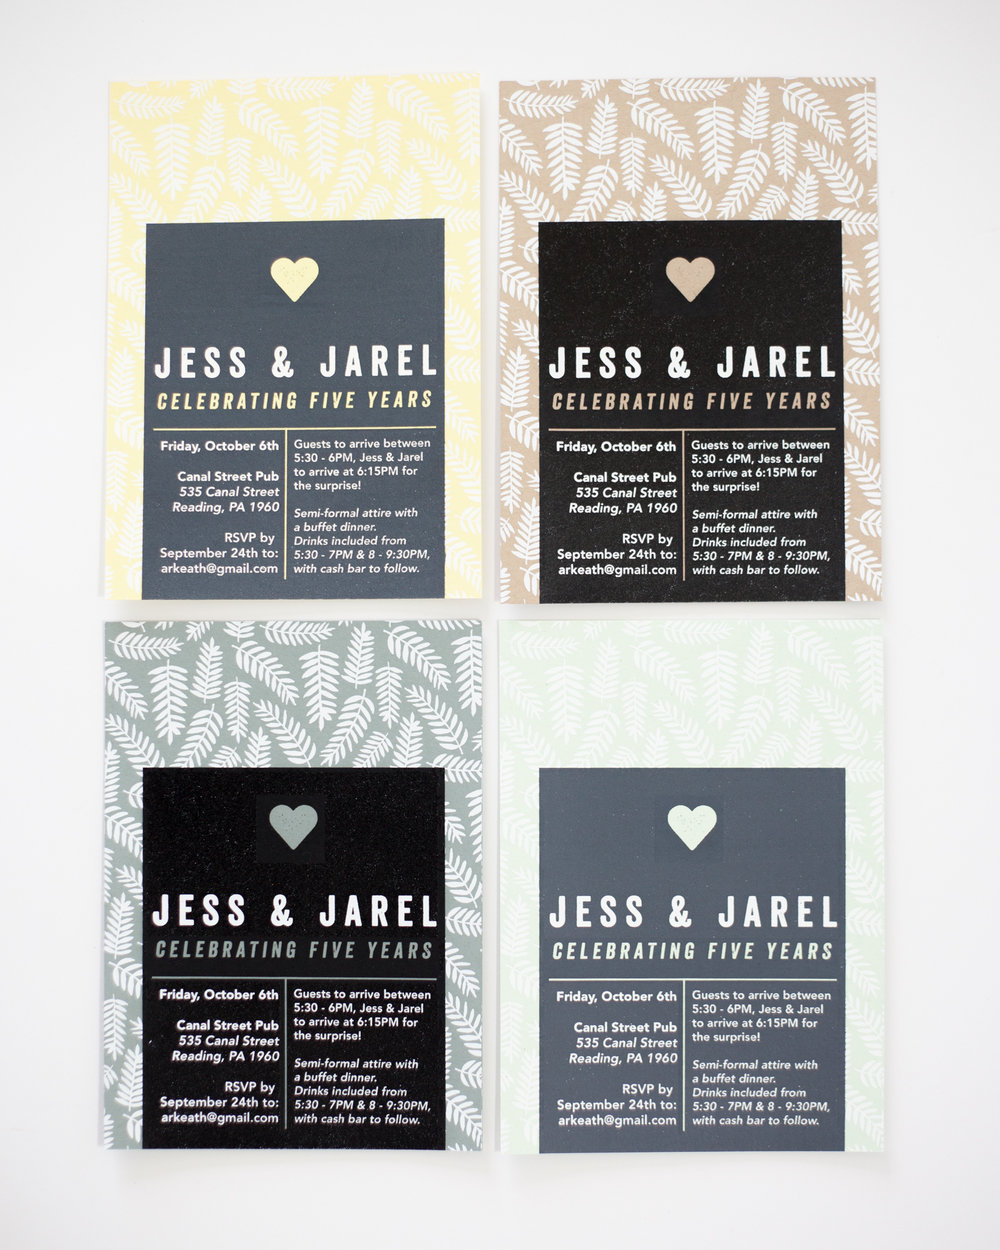 ADDITIONAL COLORWAYS FOR JESS & JAREL'S INVITE, 2017.